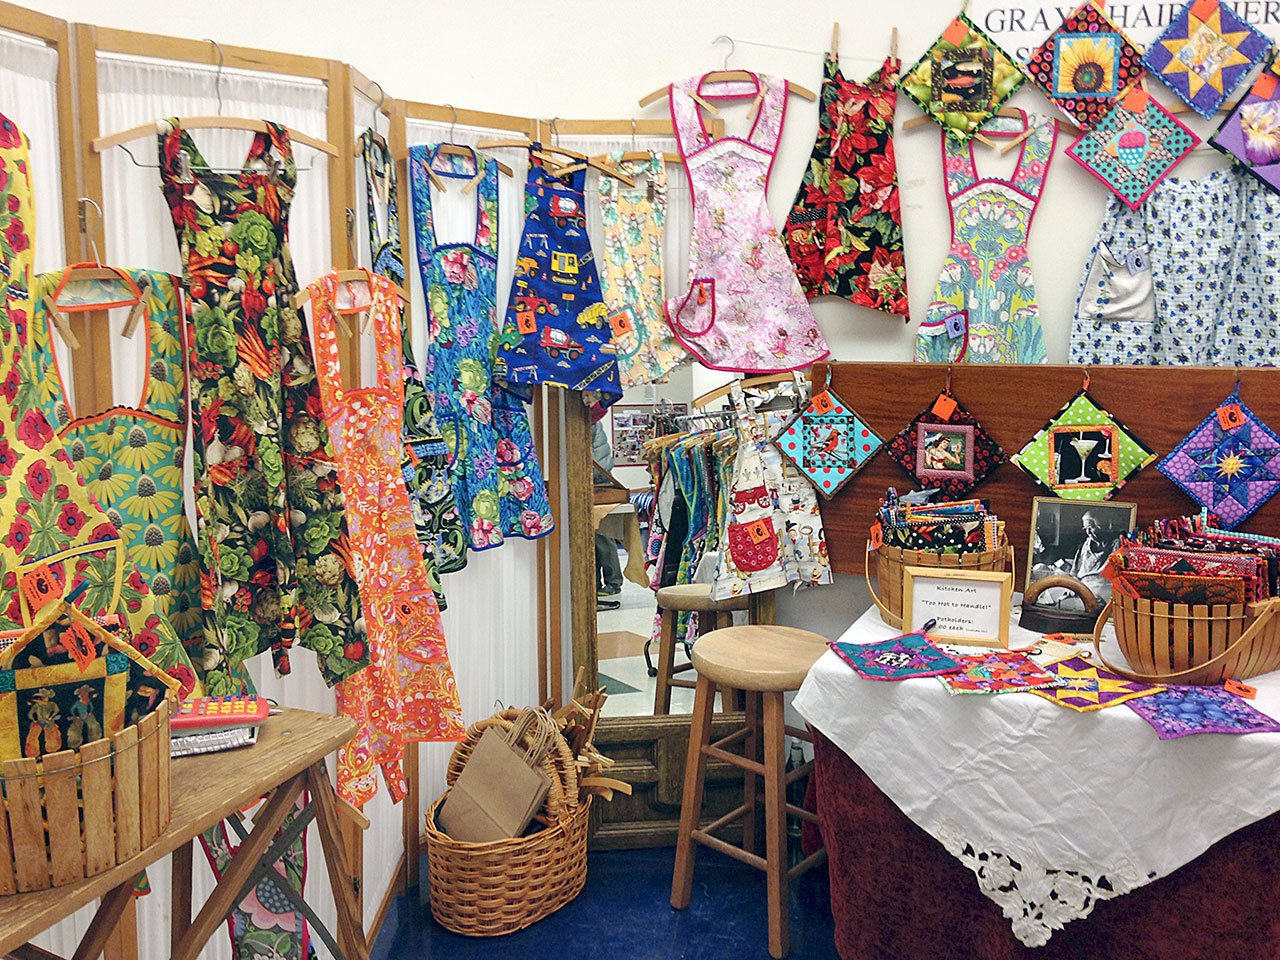 About 50 vendors will set up shop today and Saturday during the 26th annual Holiday Arts and Crafts Fair. Shown are aprons crafted by Jean McCrea of Port Townsend during the 2015 fair. (Port Townsend Arts Guild)